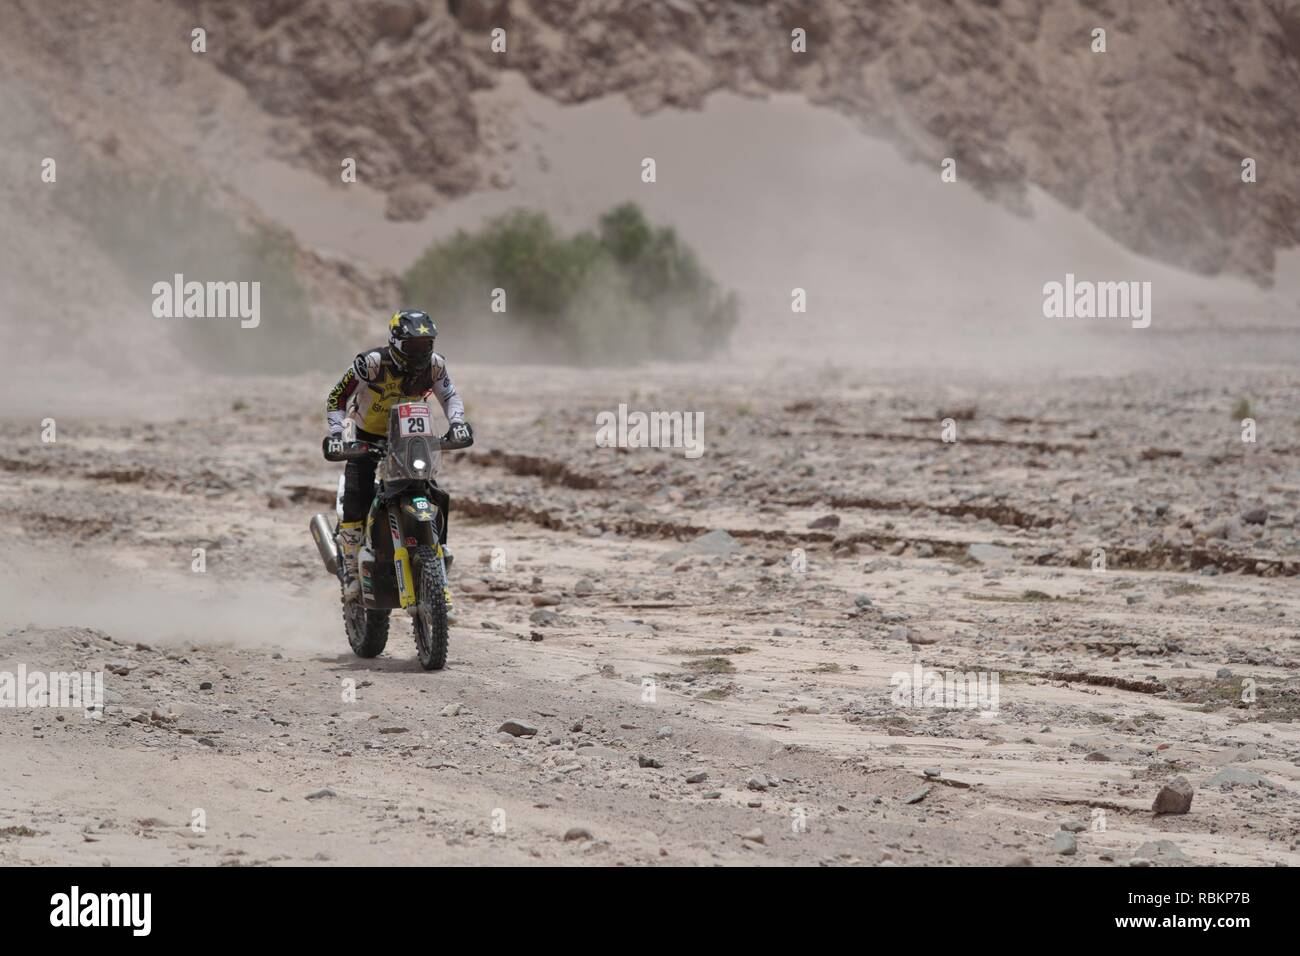 Tacna, Peru. 10th Jan, 2019. US Andrew Short rides his Husqvarna during the fourth stage of the Rally Dakar 2019 between Arequipa and Tacna, in Peru, 10 January 2019. Credit: Ernesto Arias/EFE/Alamy Live News - Stock Image